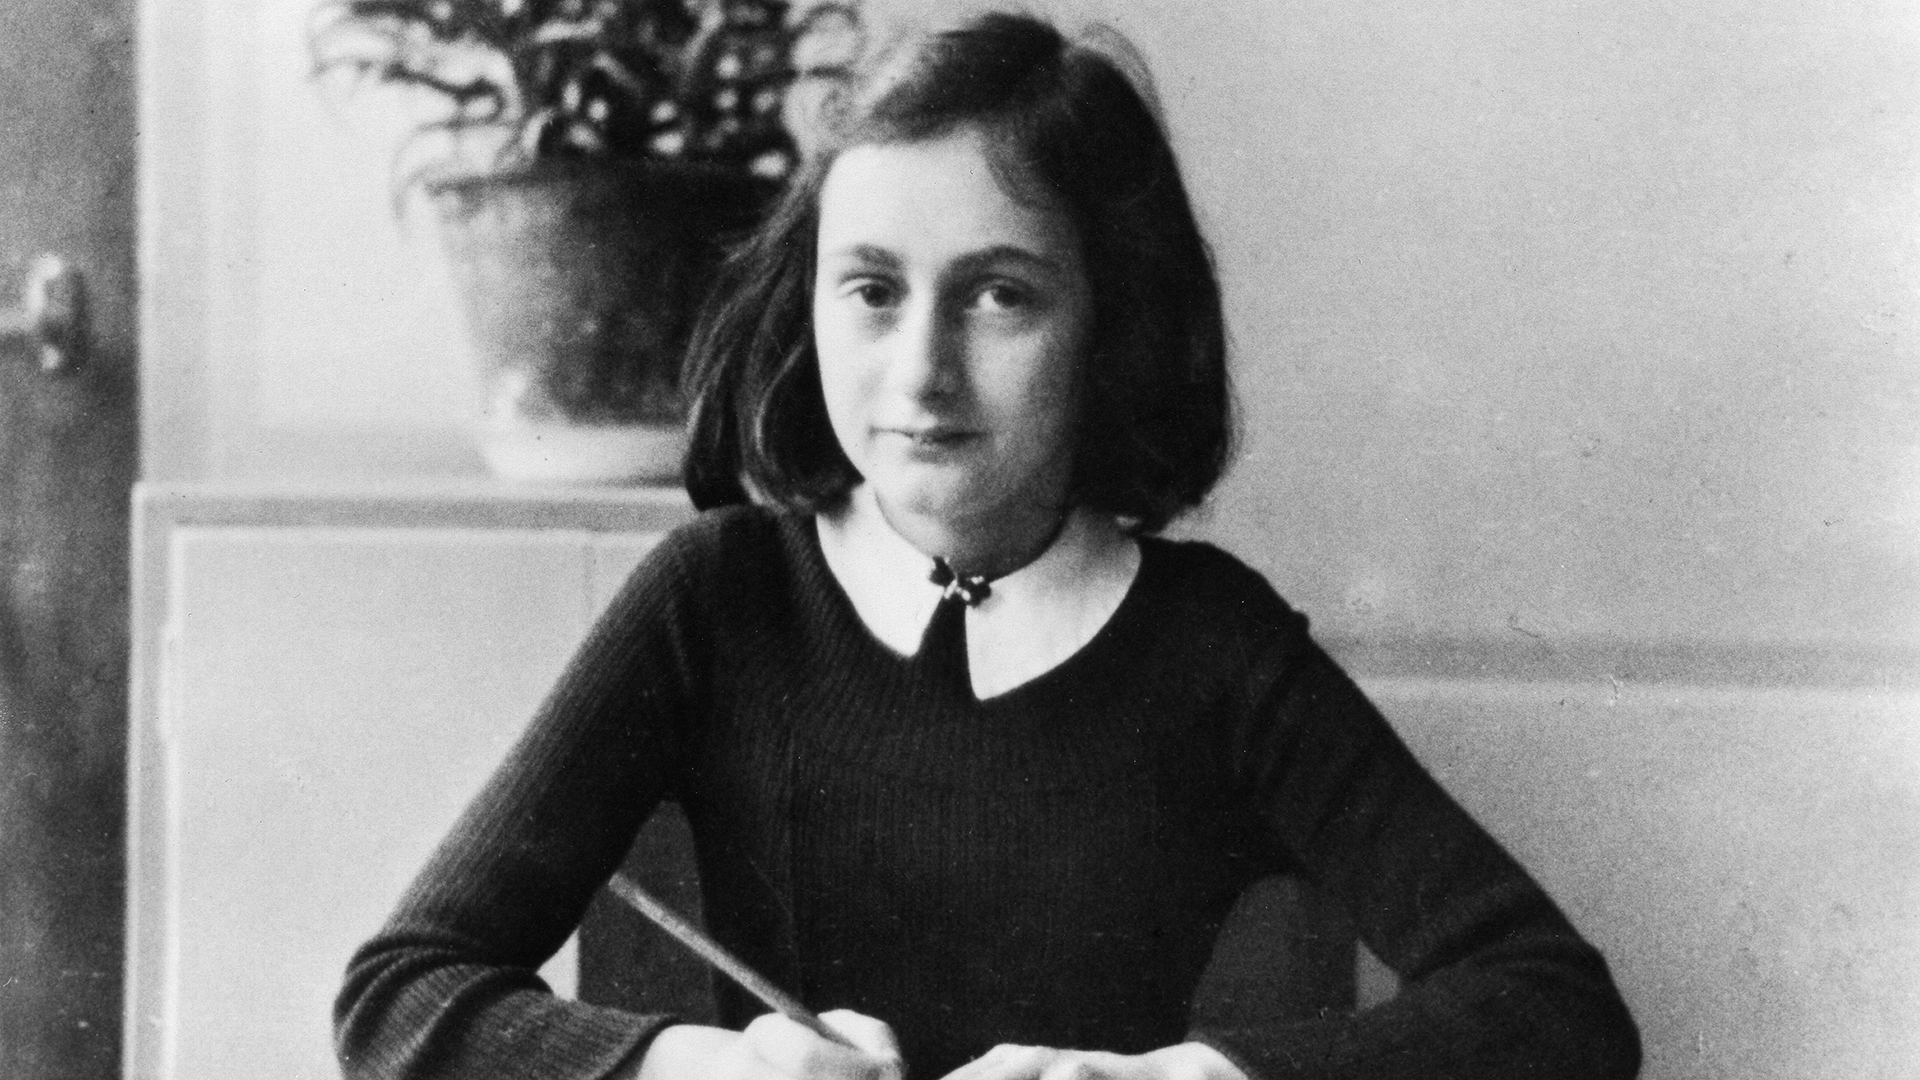 June 12, 1929: Anne Frank Was Born and Her Diary Became One of the Most Powerful Memoirs of the Holocaust